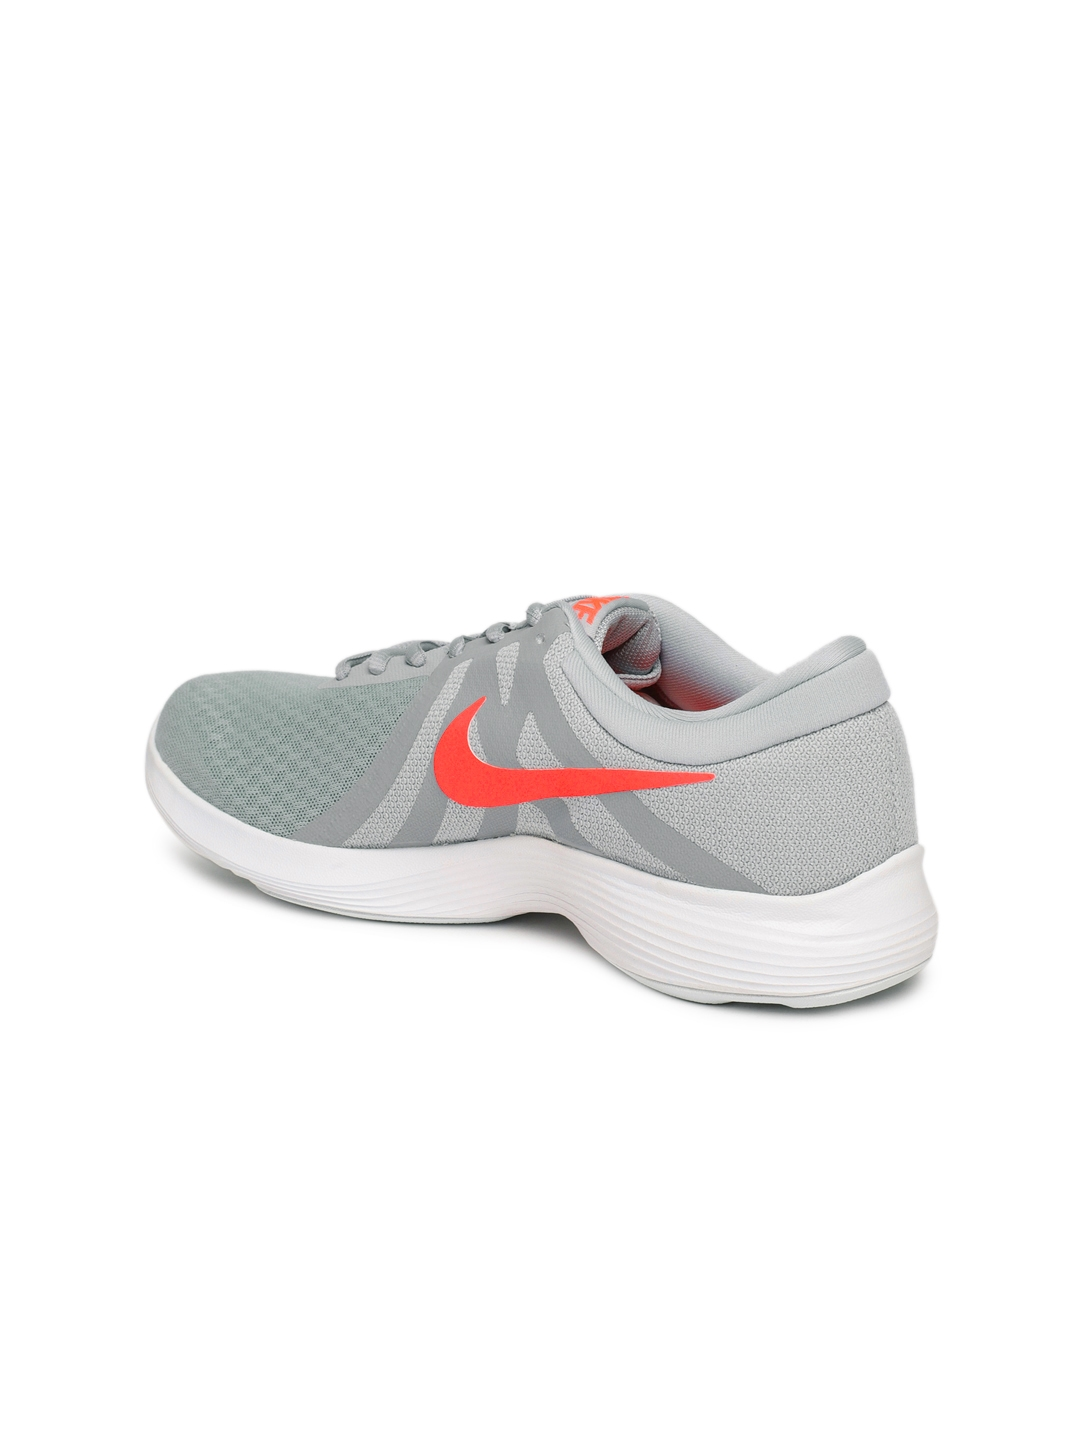 3d7b3ab85ff4 Buy Nike Women Grey Solid REVOLUTION 4 Running Shoes - Sports Shoes ...